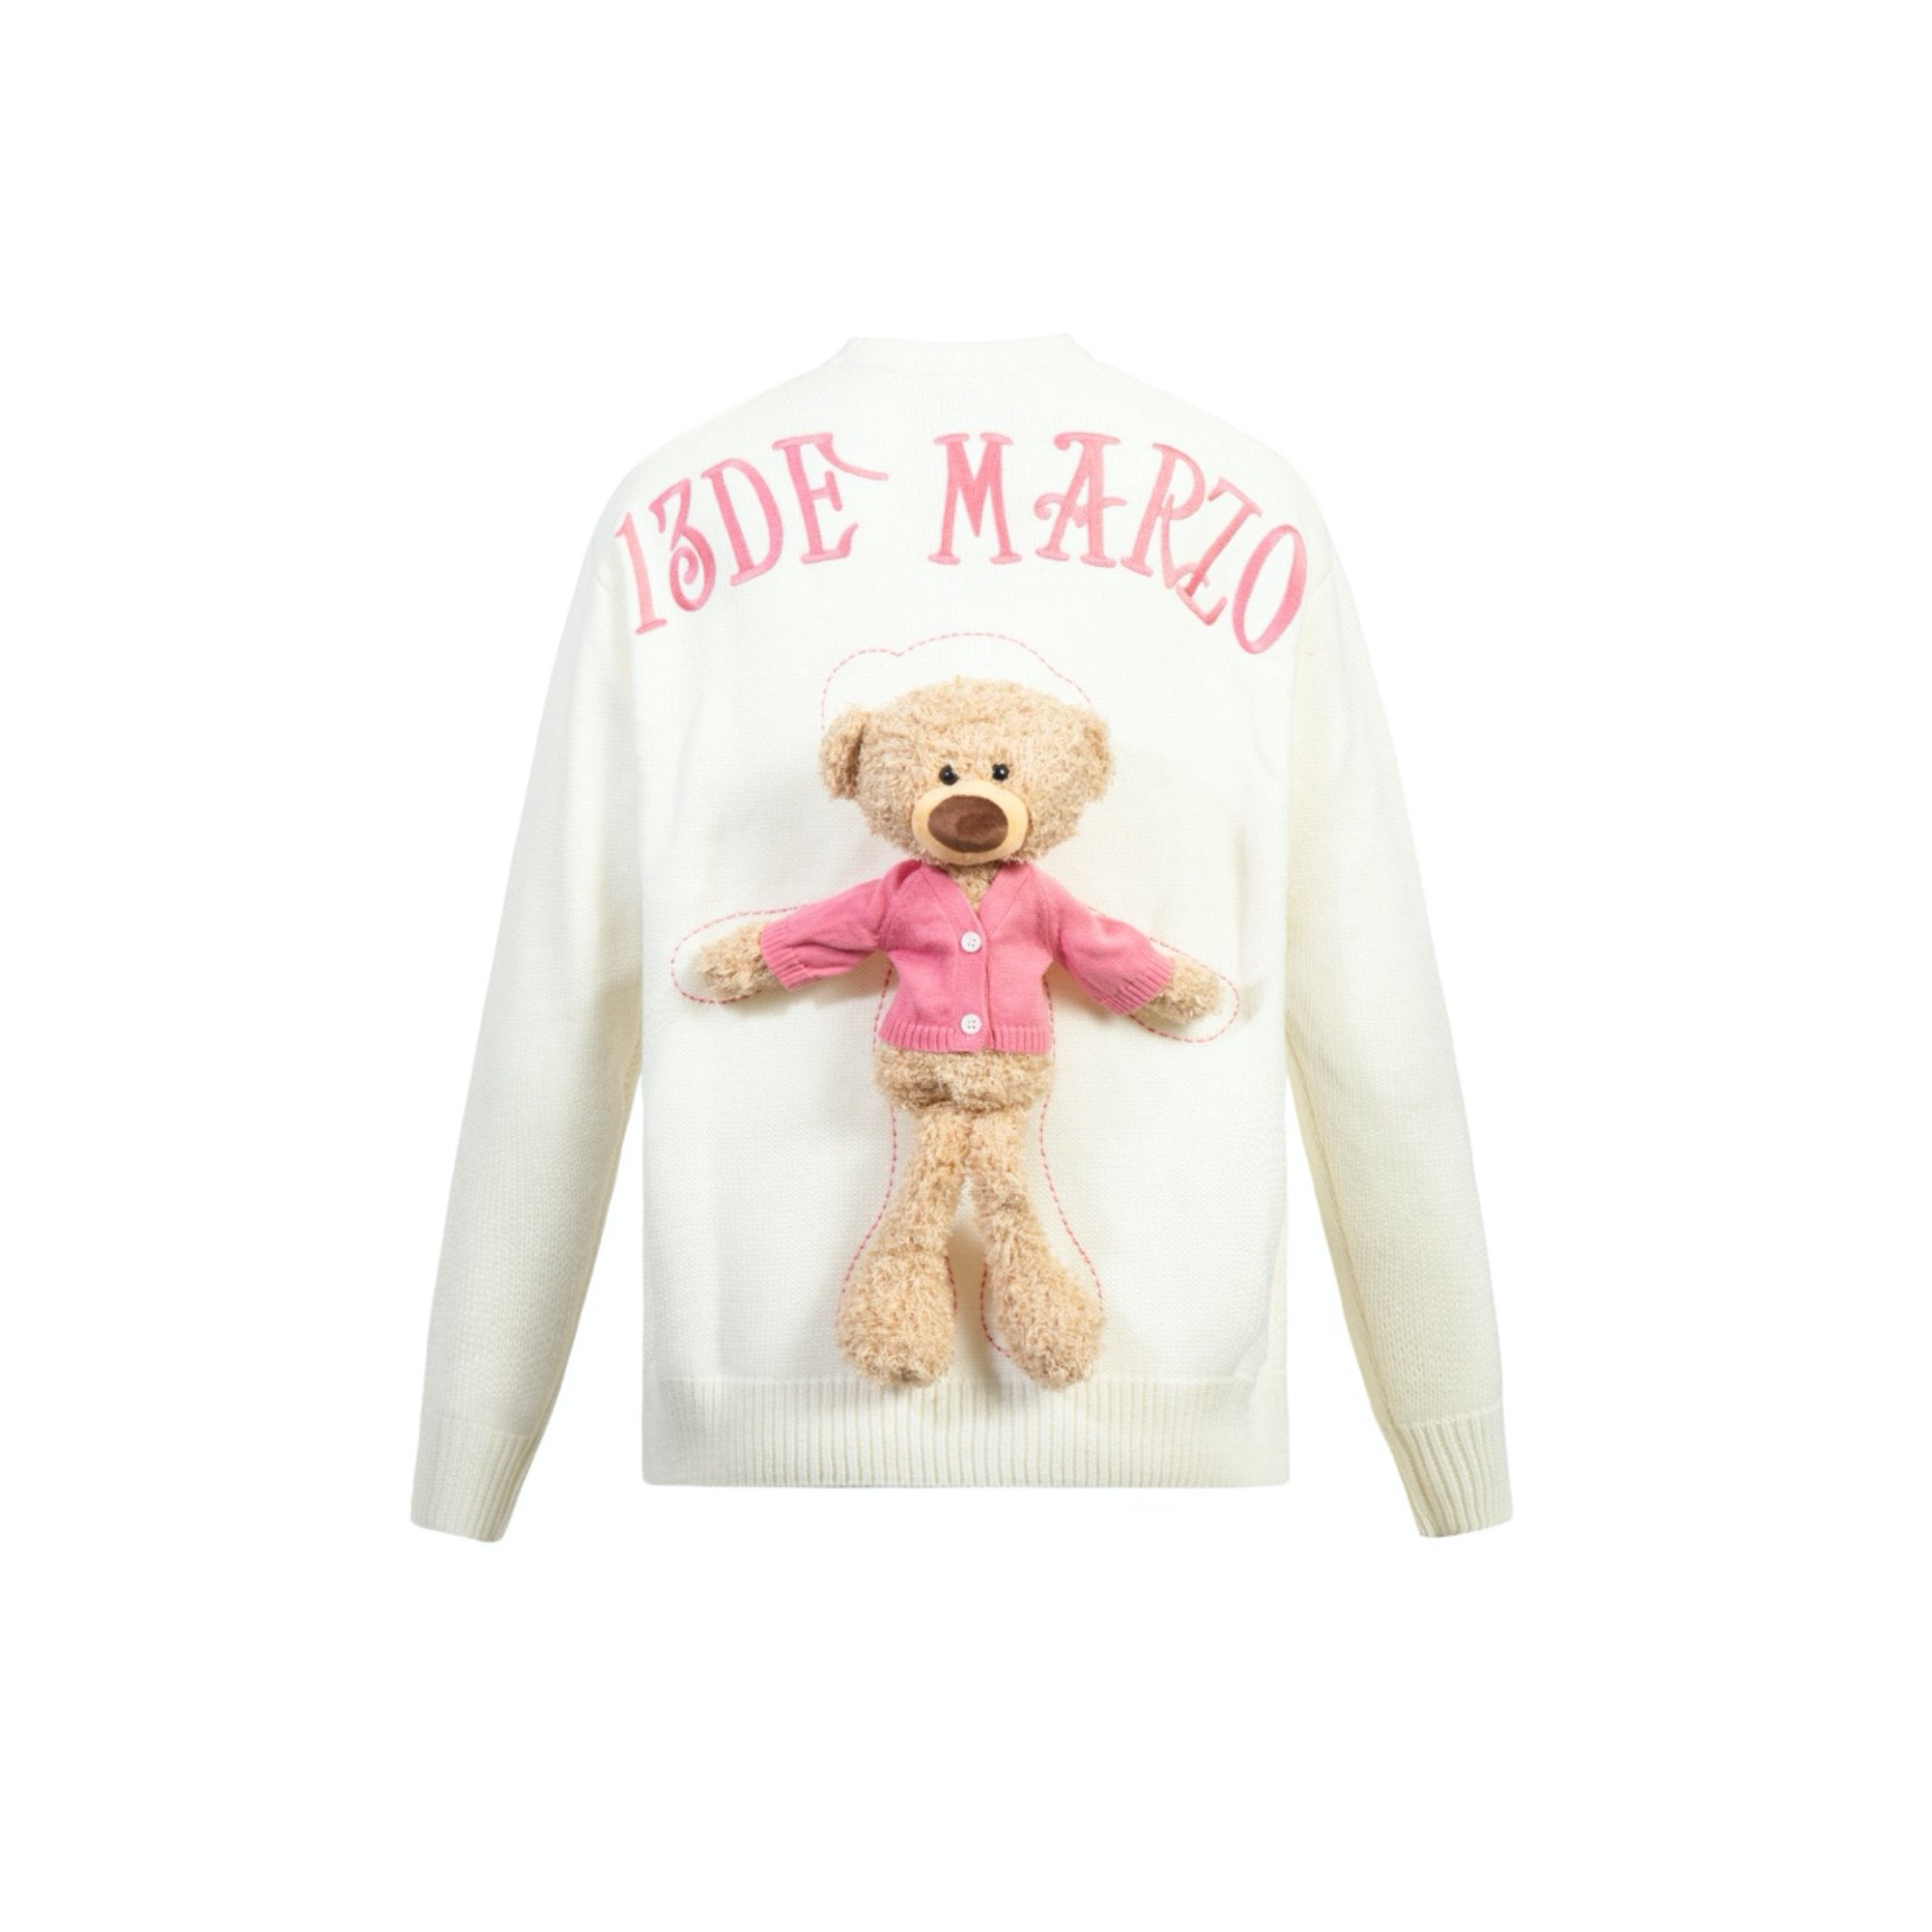 13 DE MARZO Clothed Teddy Bear Sweater White | MADA IN CHINA